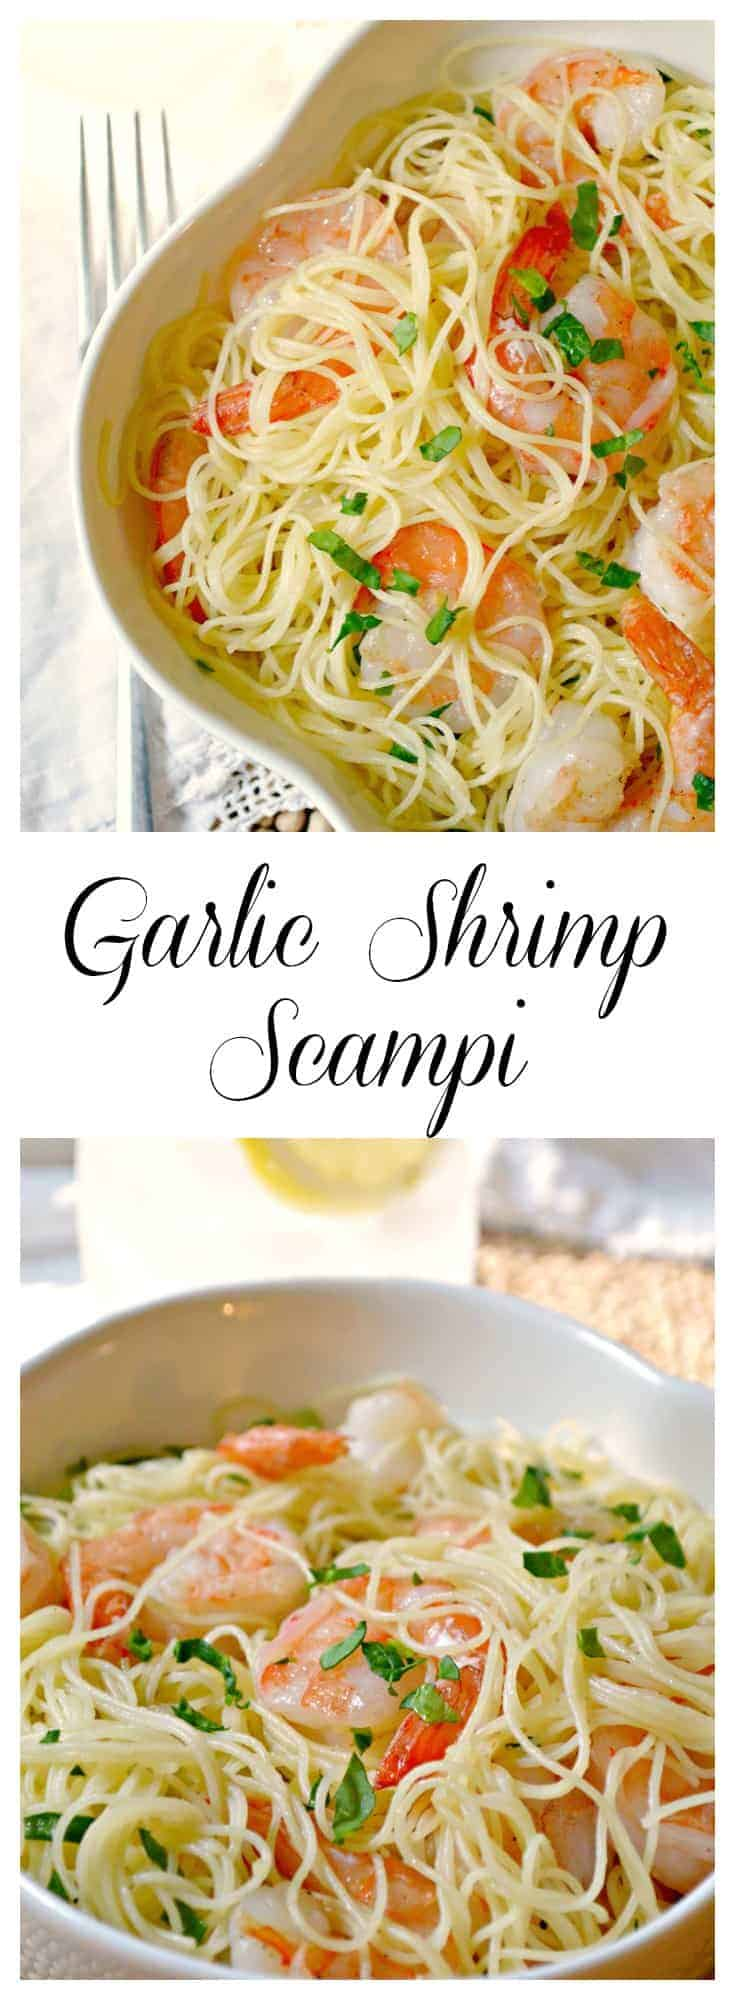 Garlic Shrimp Scampi recipe - simple to make, and takes little time as well - great for the days when the schedule is bursting with activities. #shrimprecipe #scampi #shrimppasta